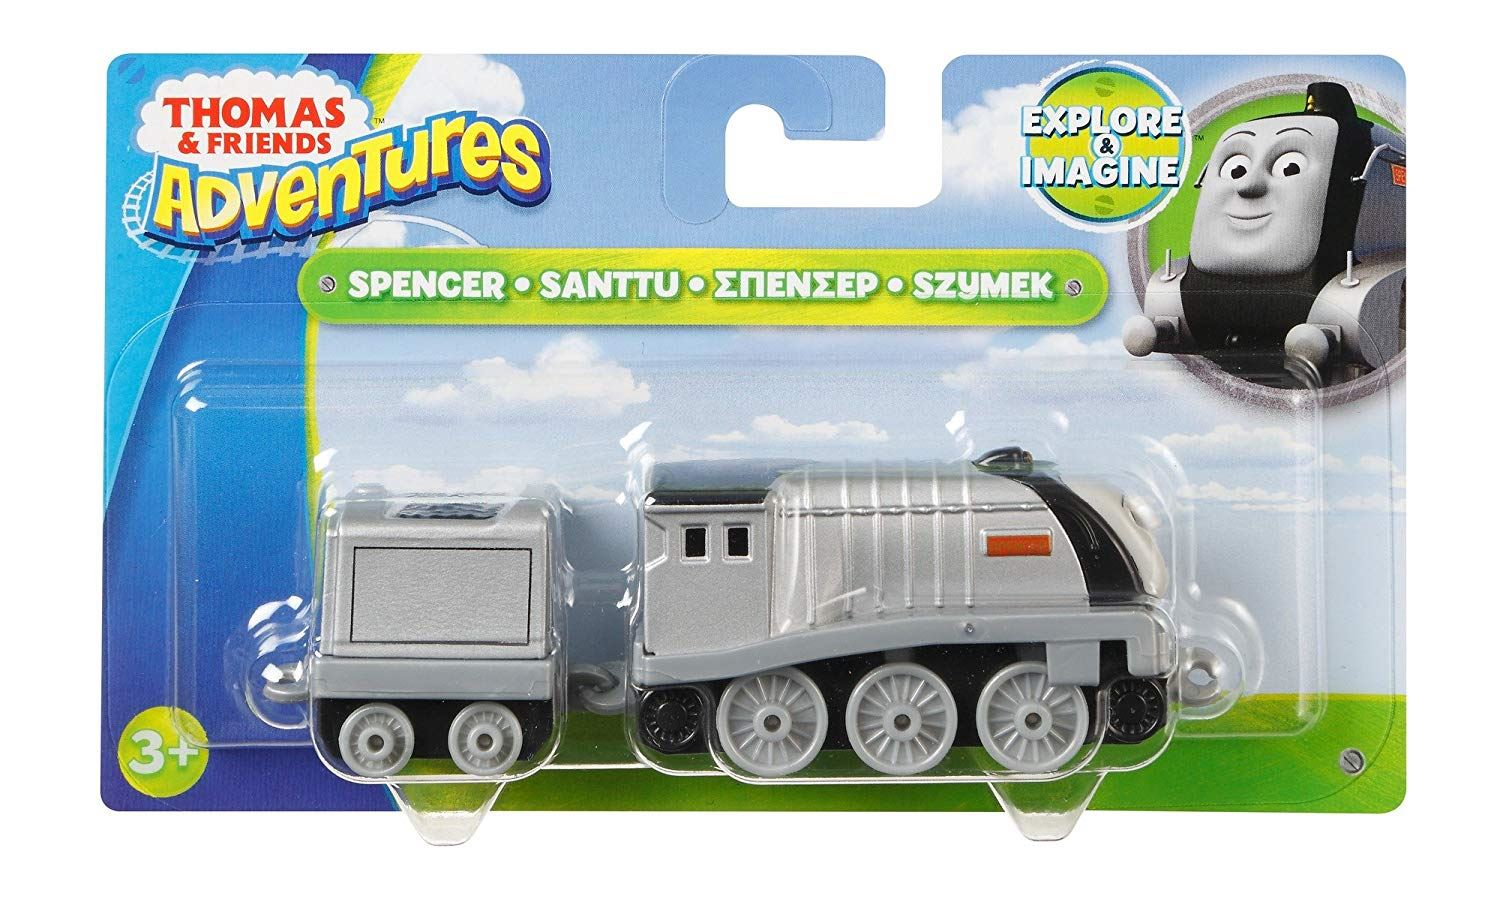 Thomas-amp-Friends-Adventures-Ferdinand-lexi-Shane-Dash-Huge-Bill-Trains Indexbild 46